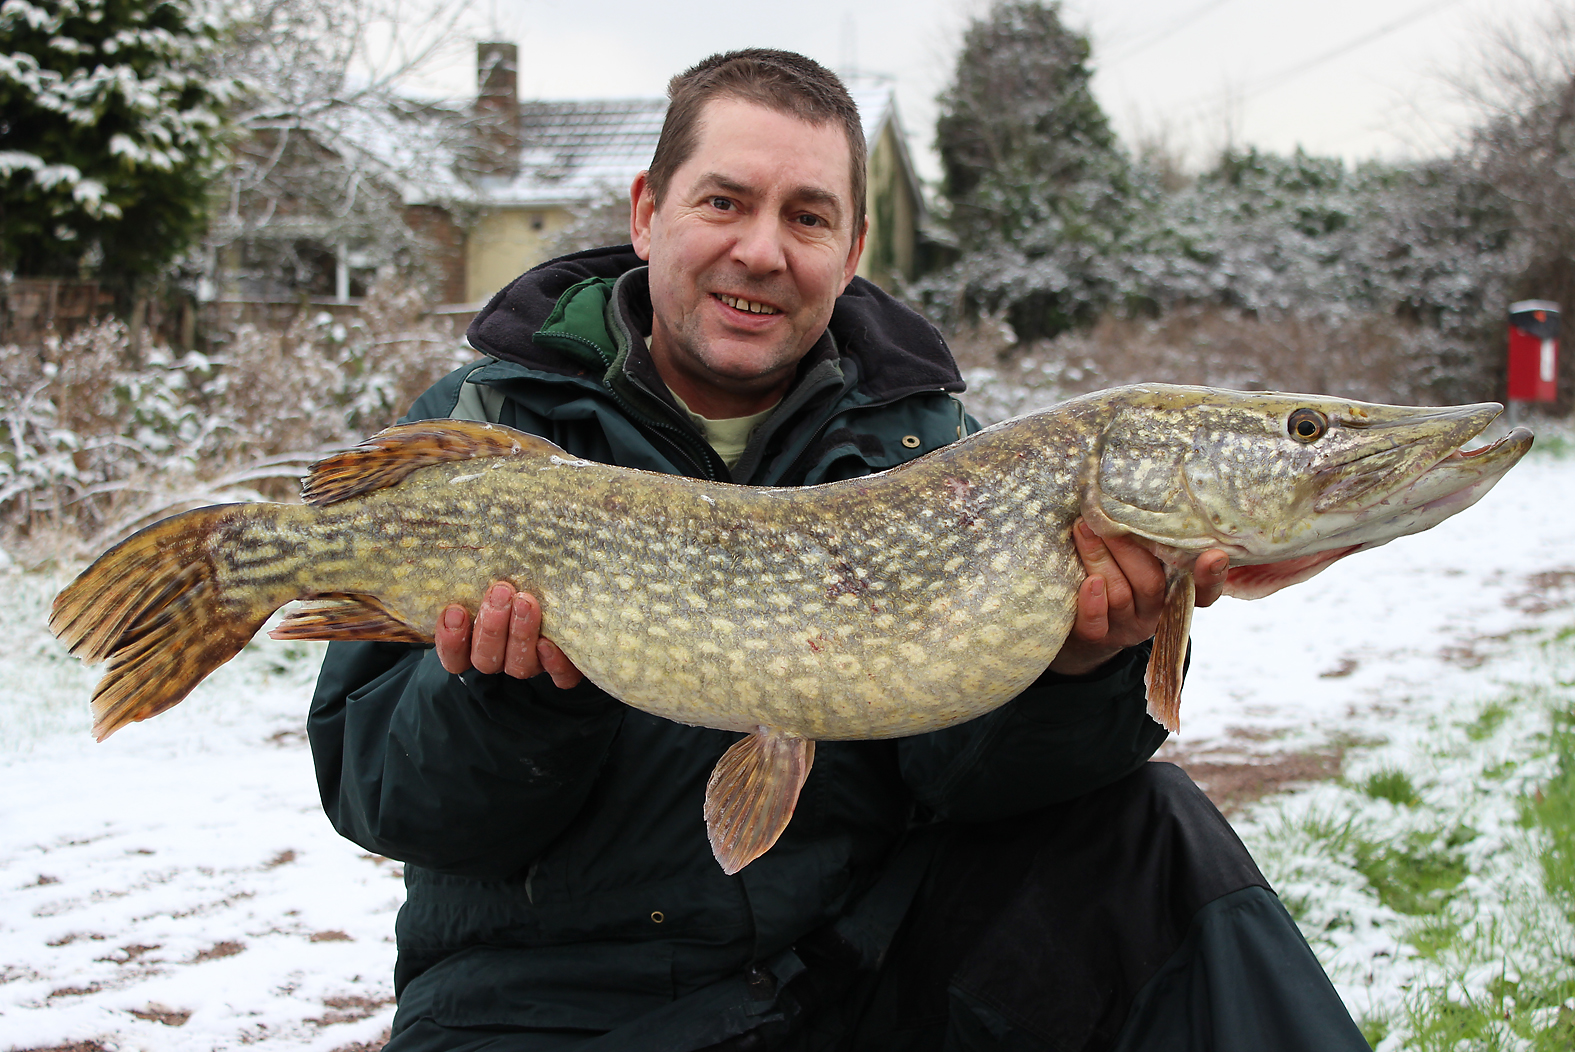 Now that's a snow fish! Gary with a 16lb'er